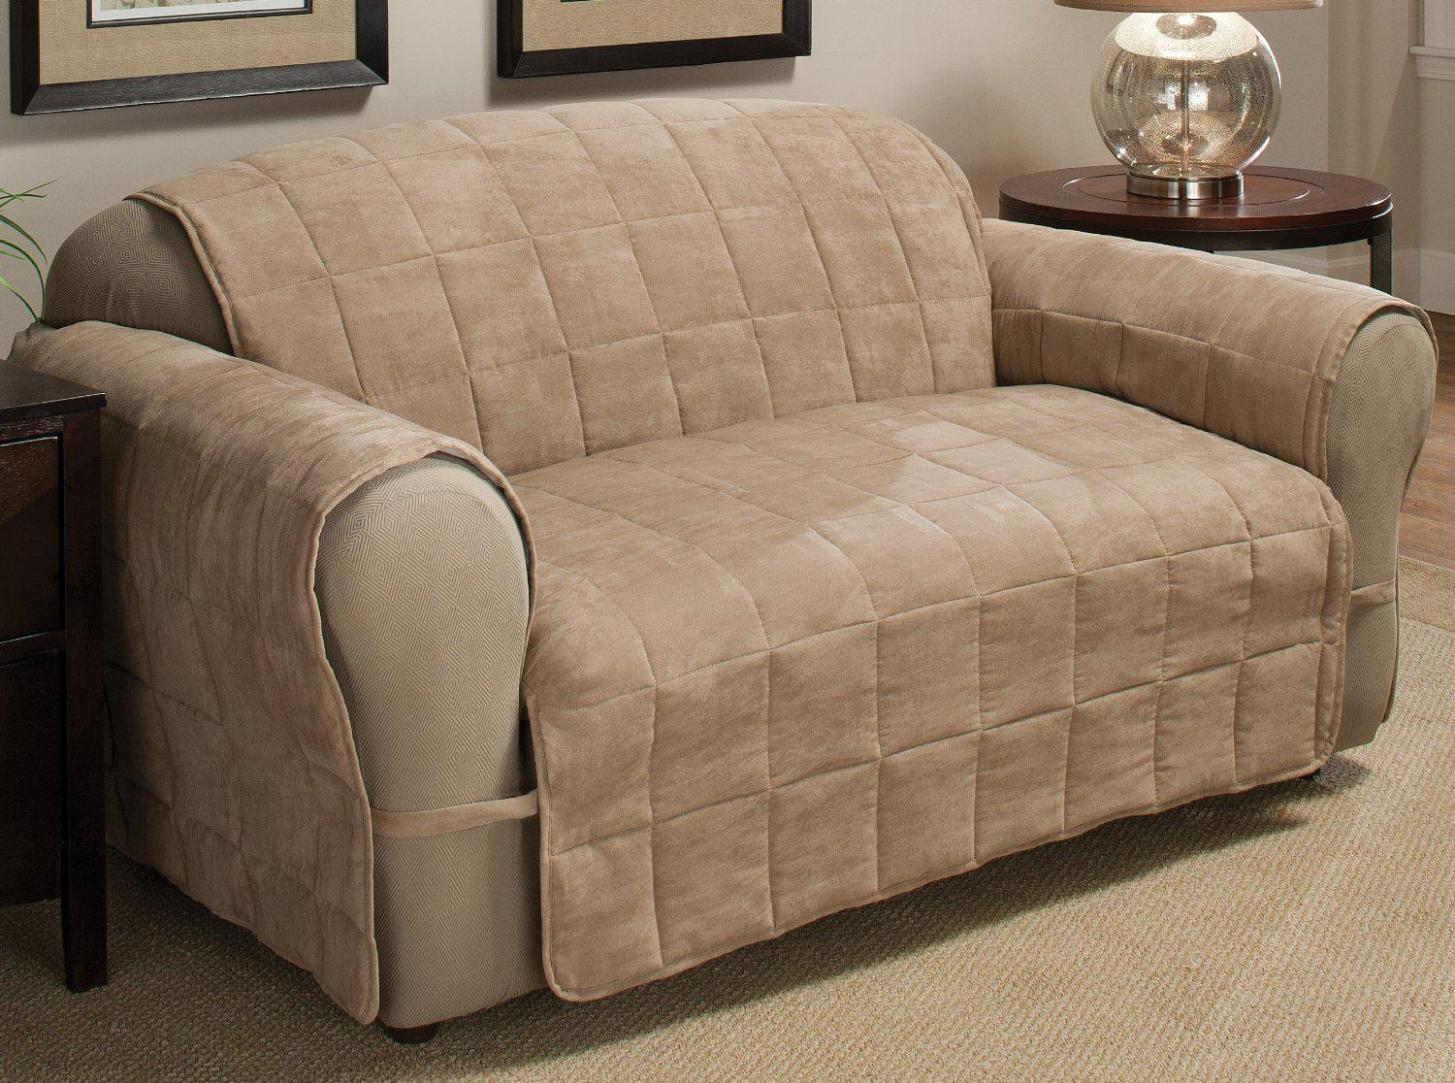 Recliner Covers | Dining Chair Covers | Couch Covers